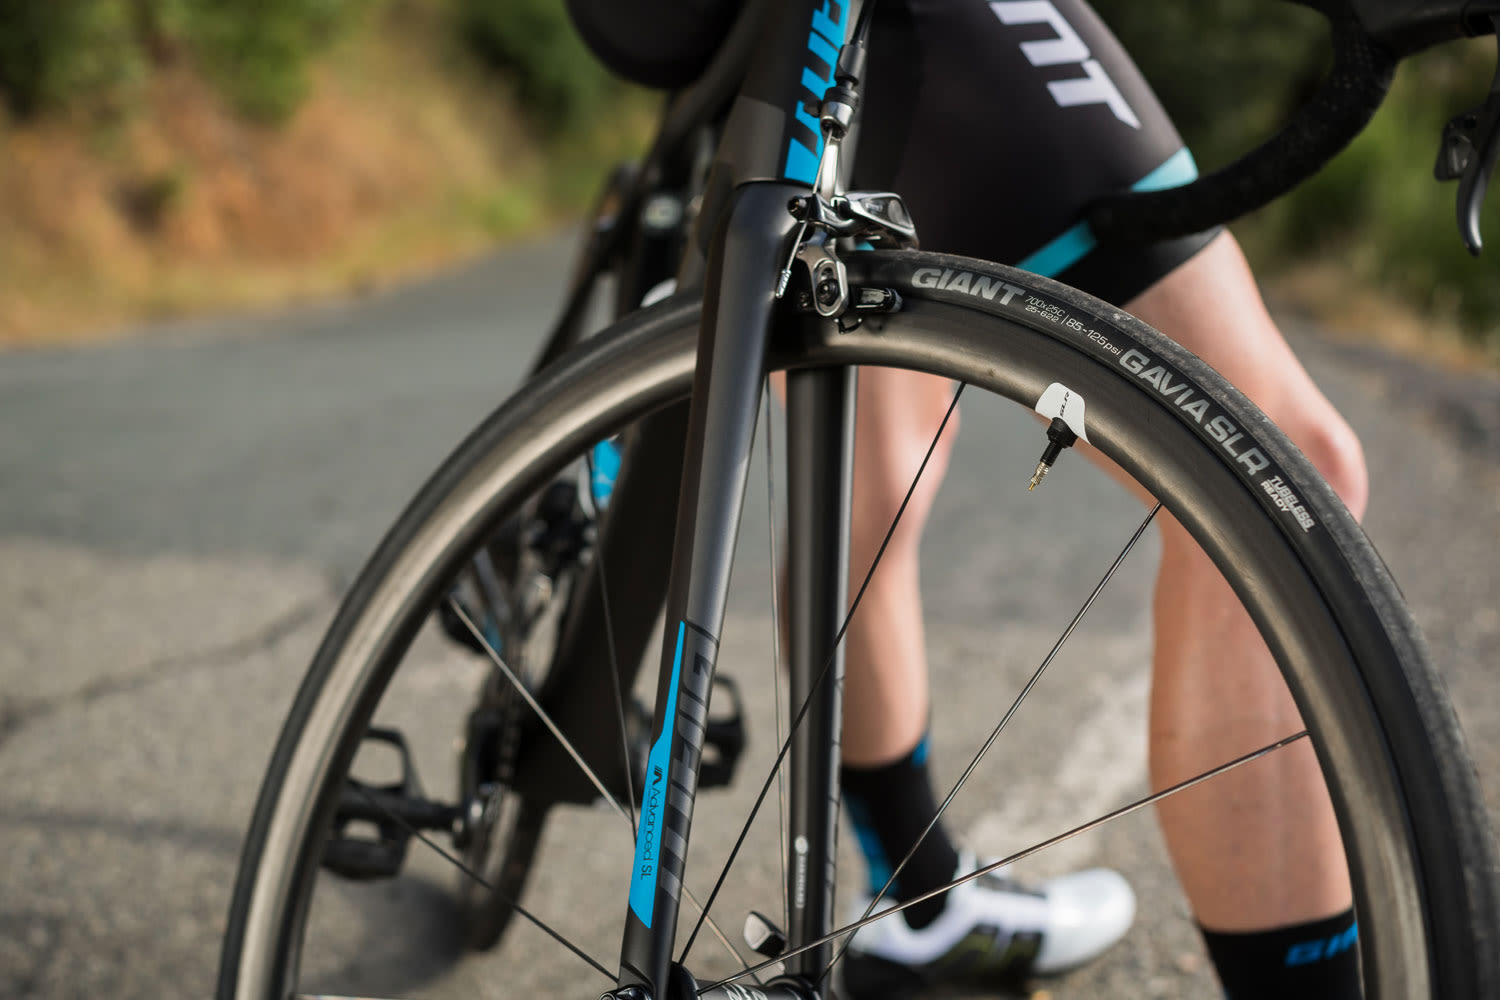 Gavia SLR/SL Tubeless On-Road Tires | Giant Bicycles